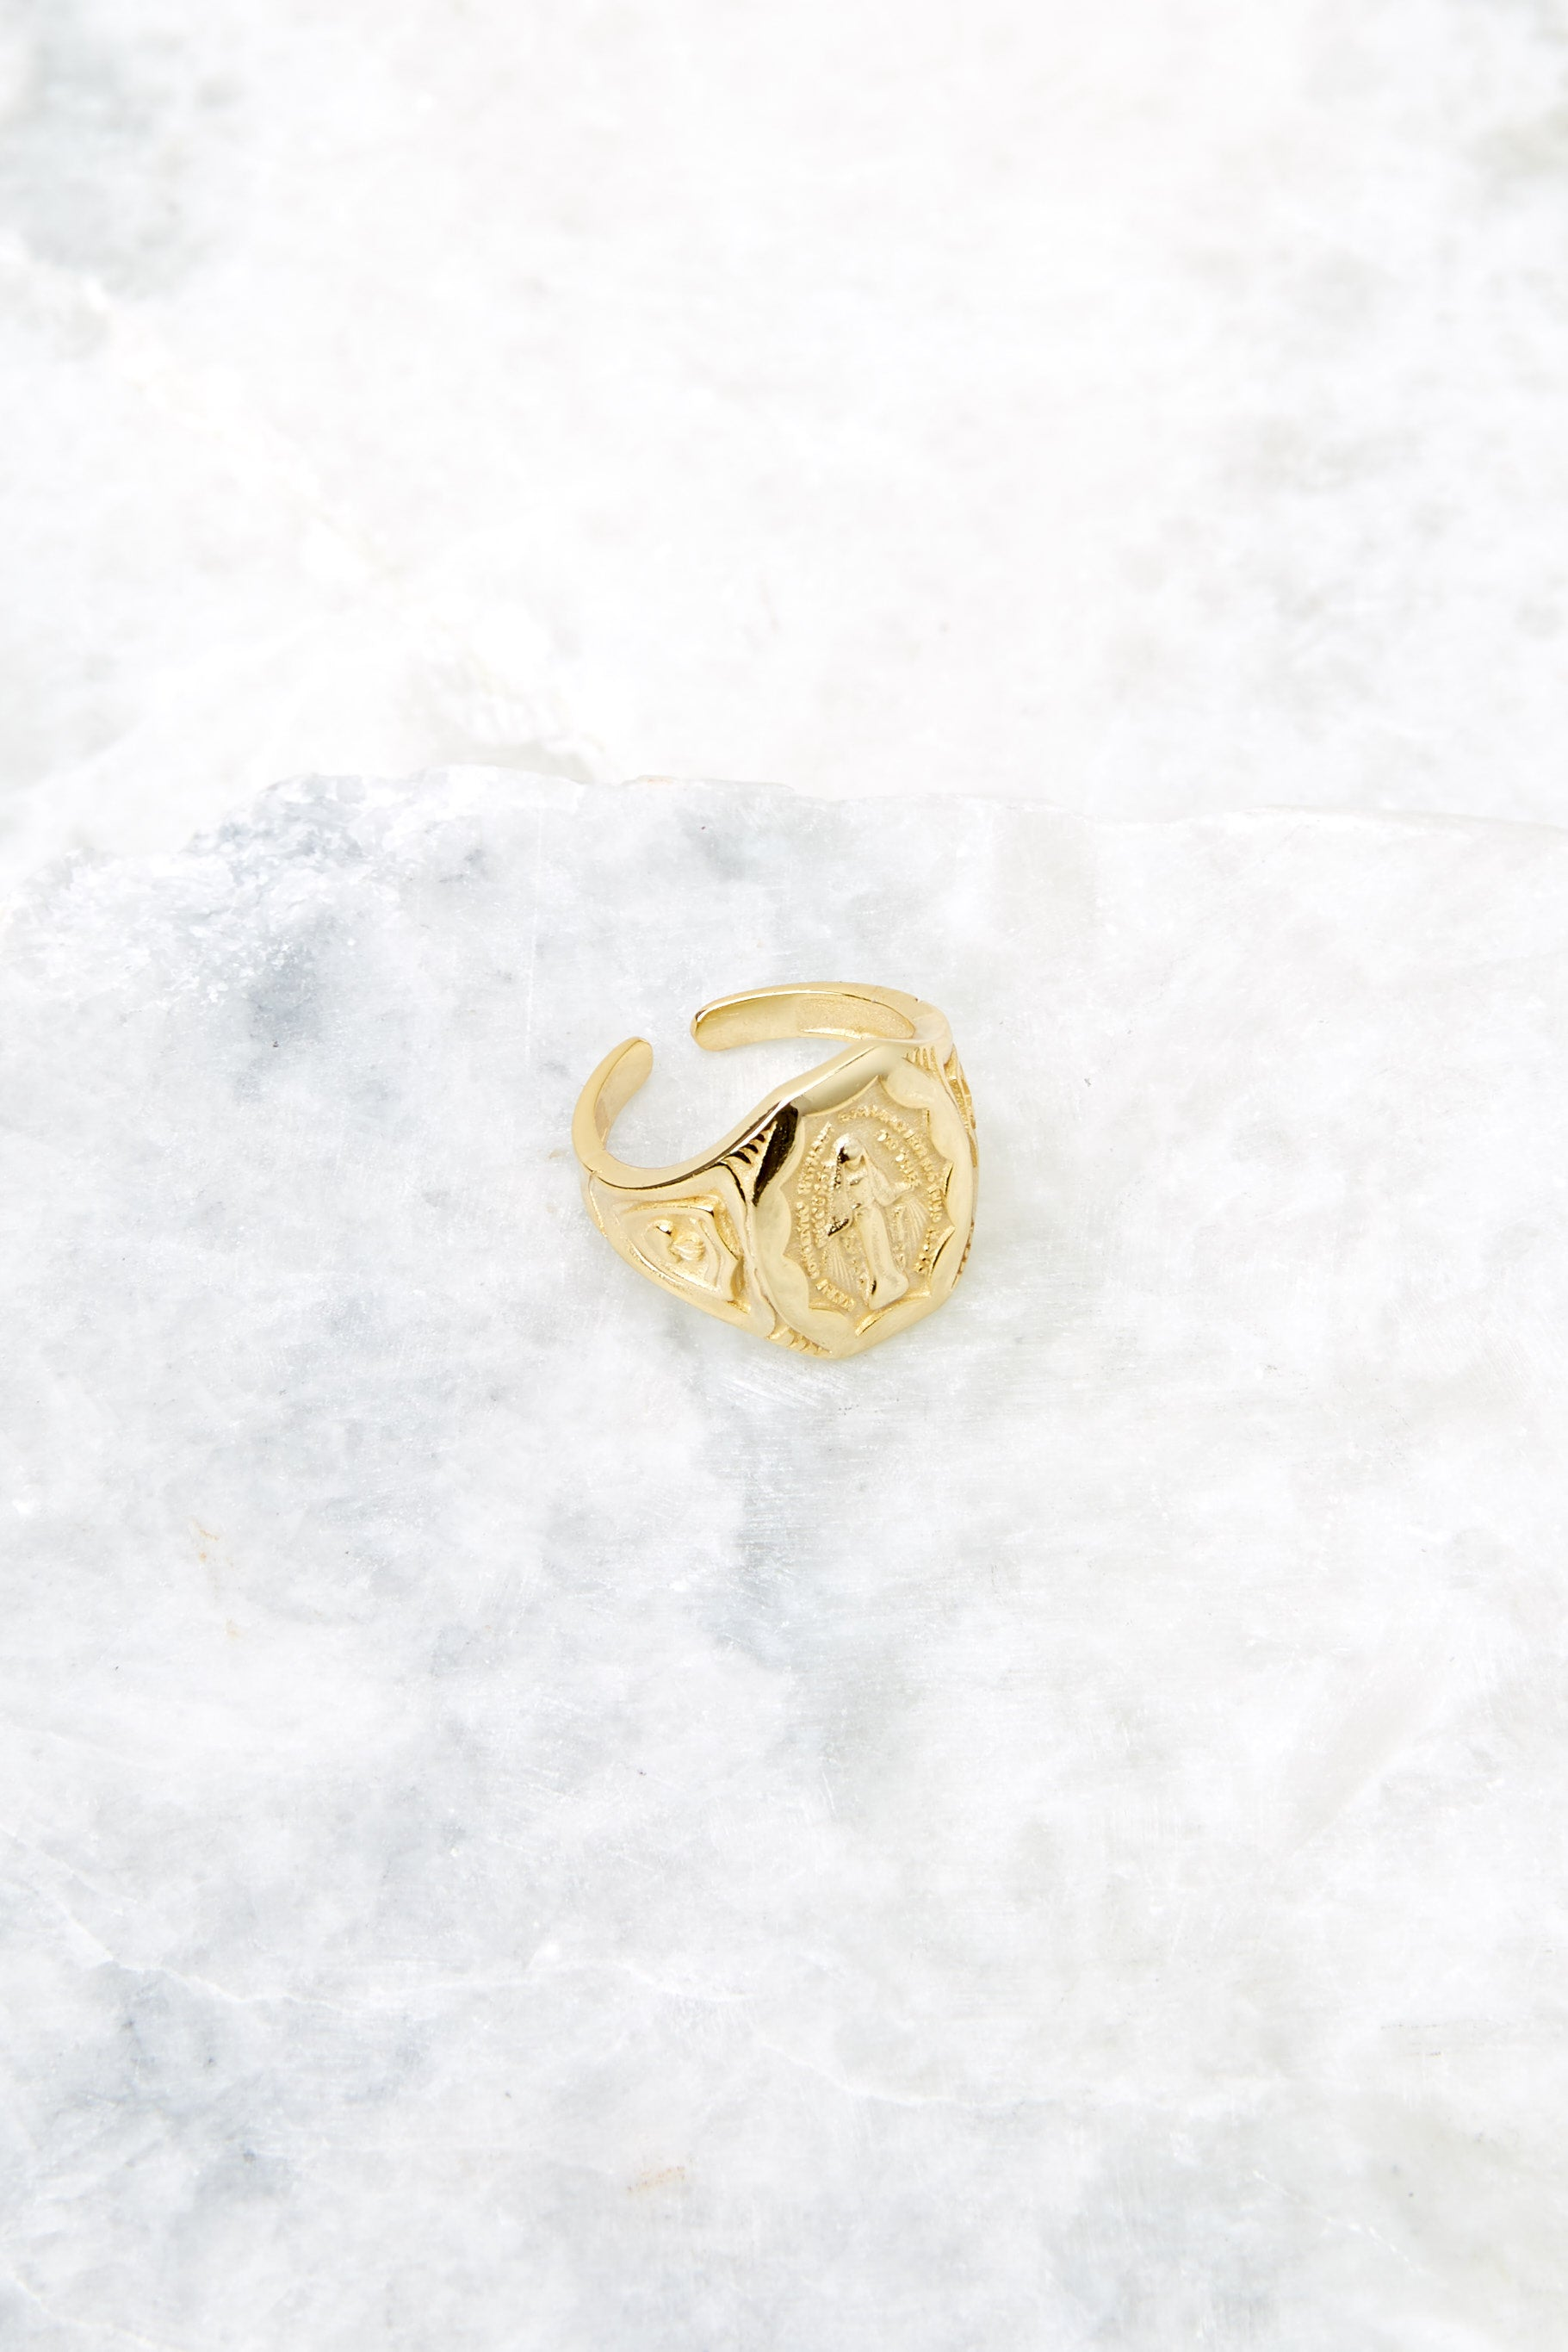 Favored Gold Signet Ring